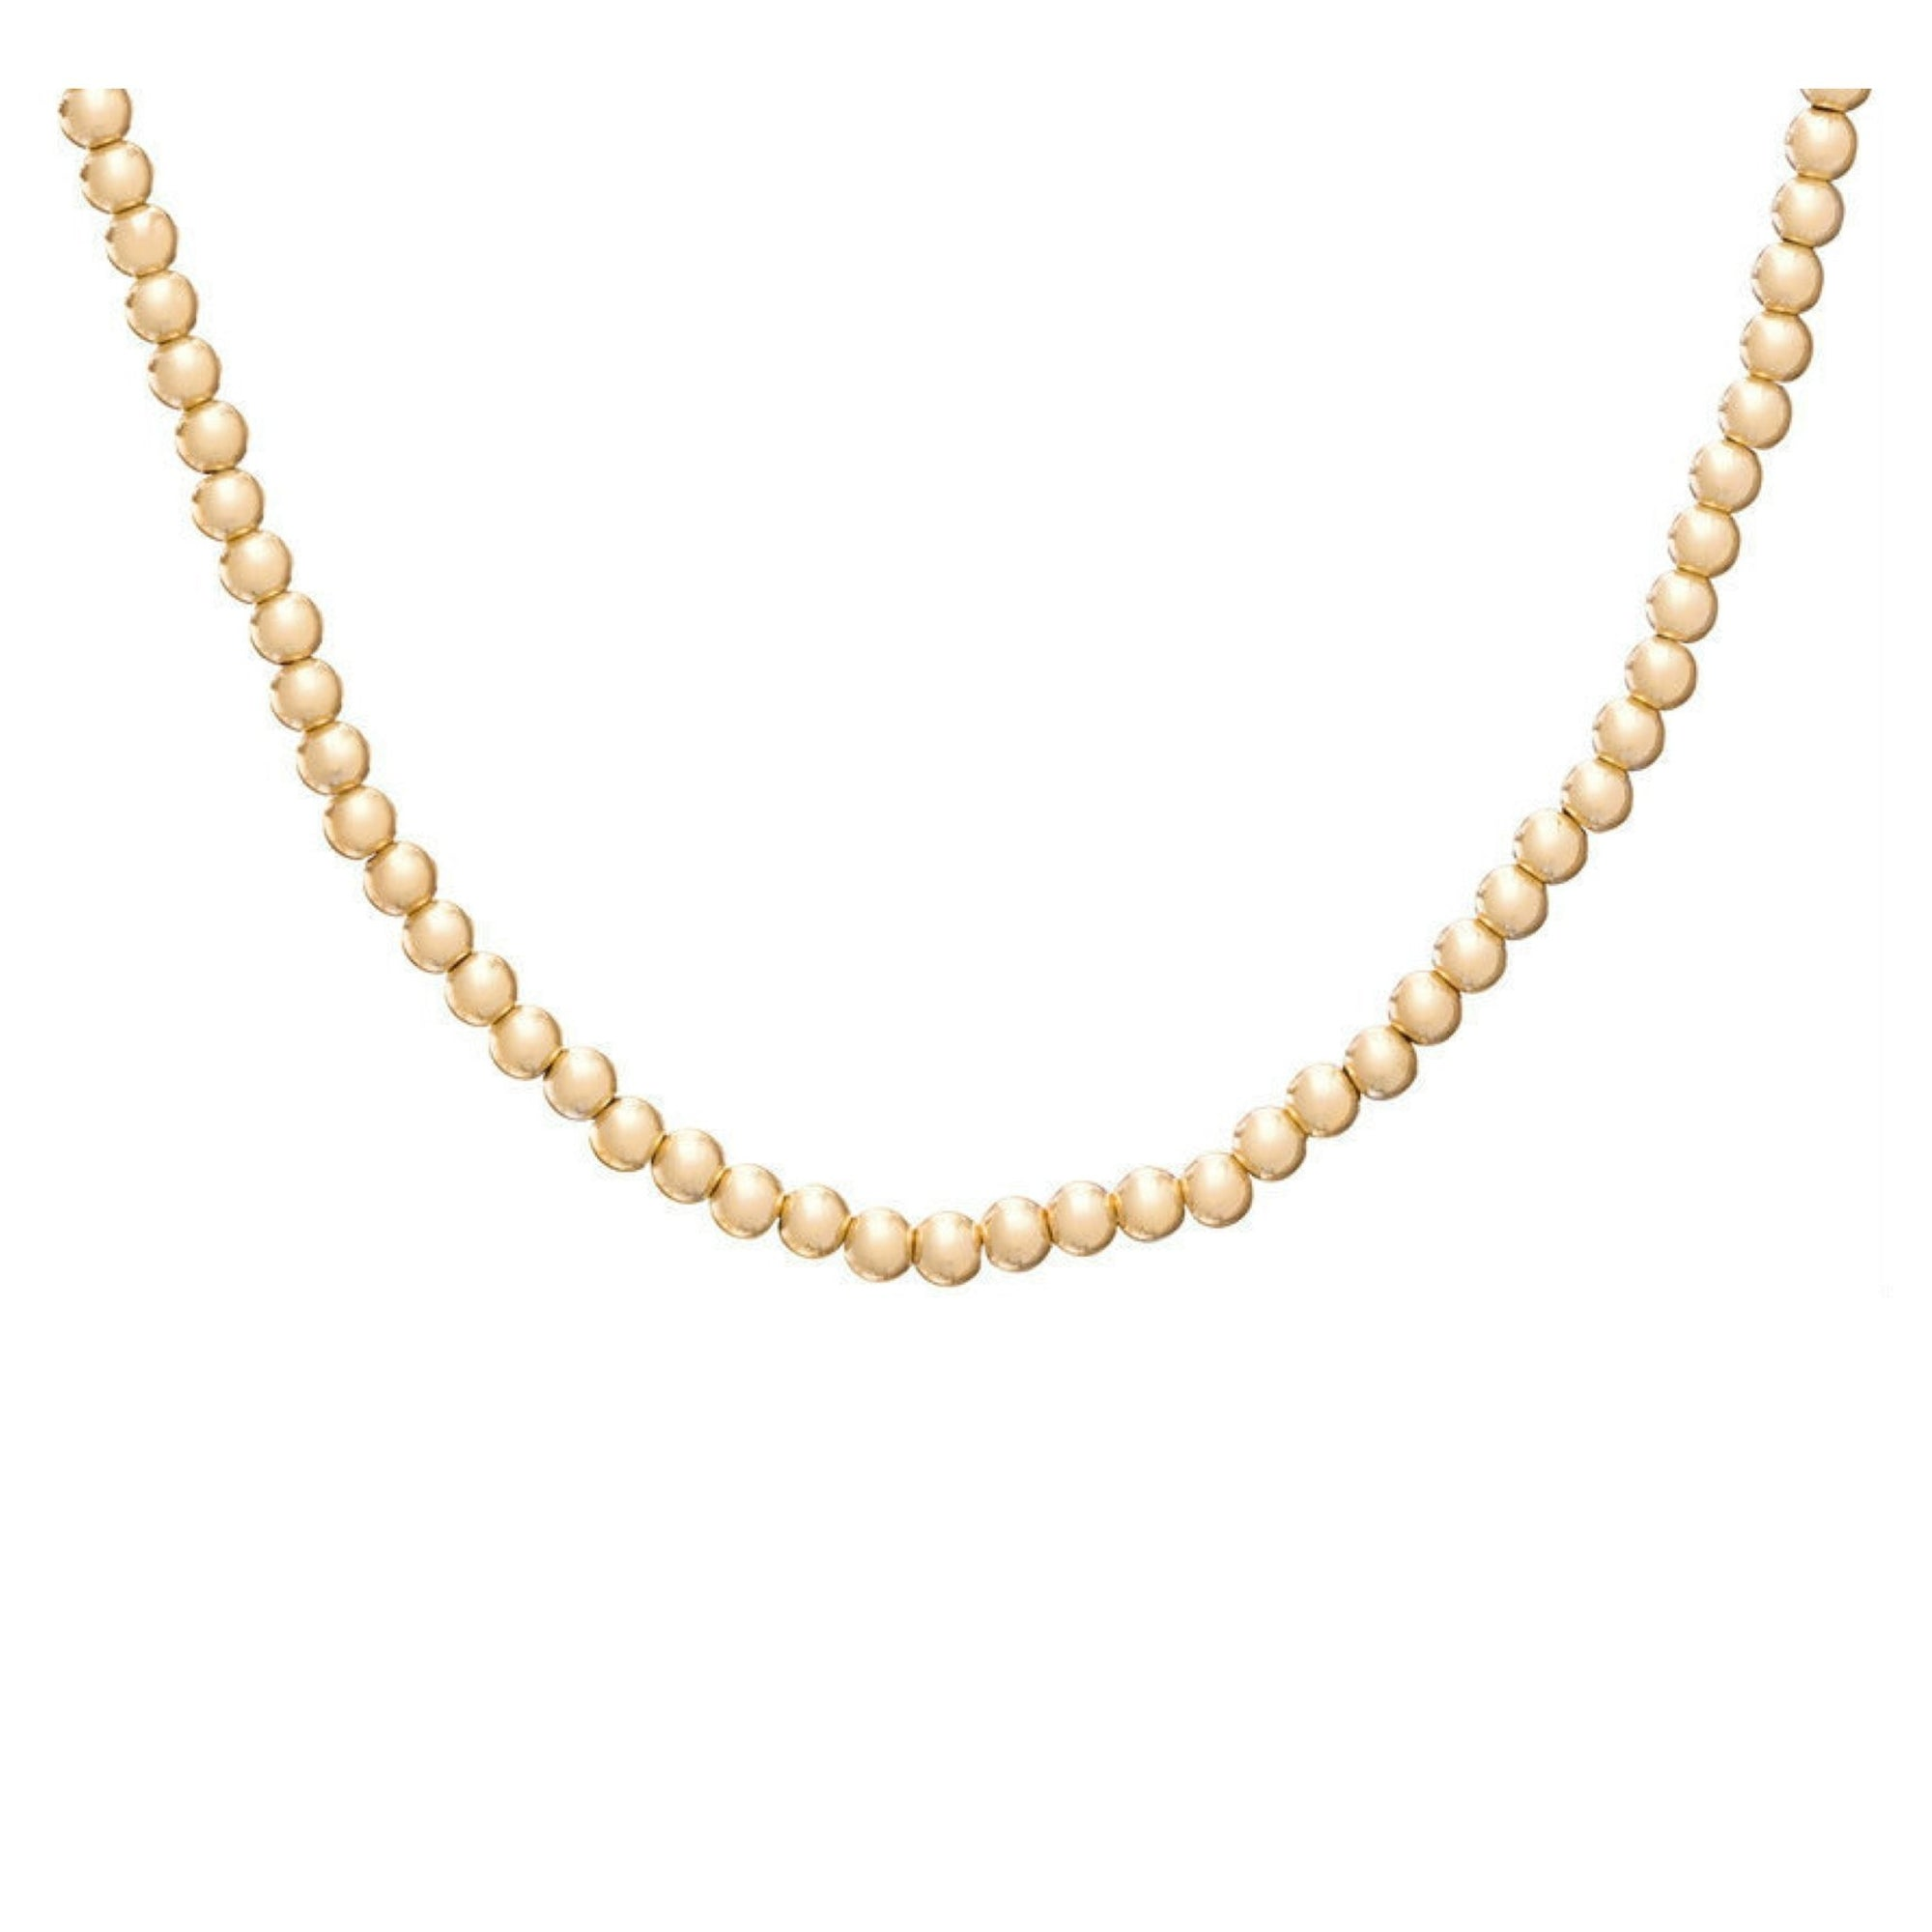 CLASSIC GOLD 3MM BEAD CHOKER - Molly's! A Chic and Unique Boutique